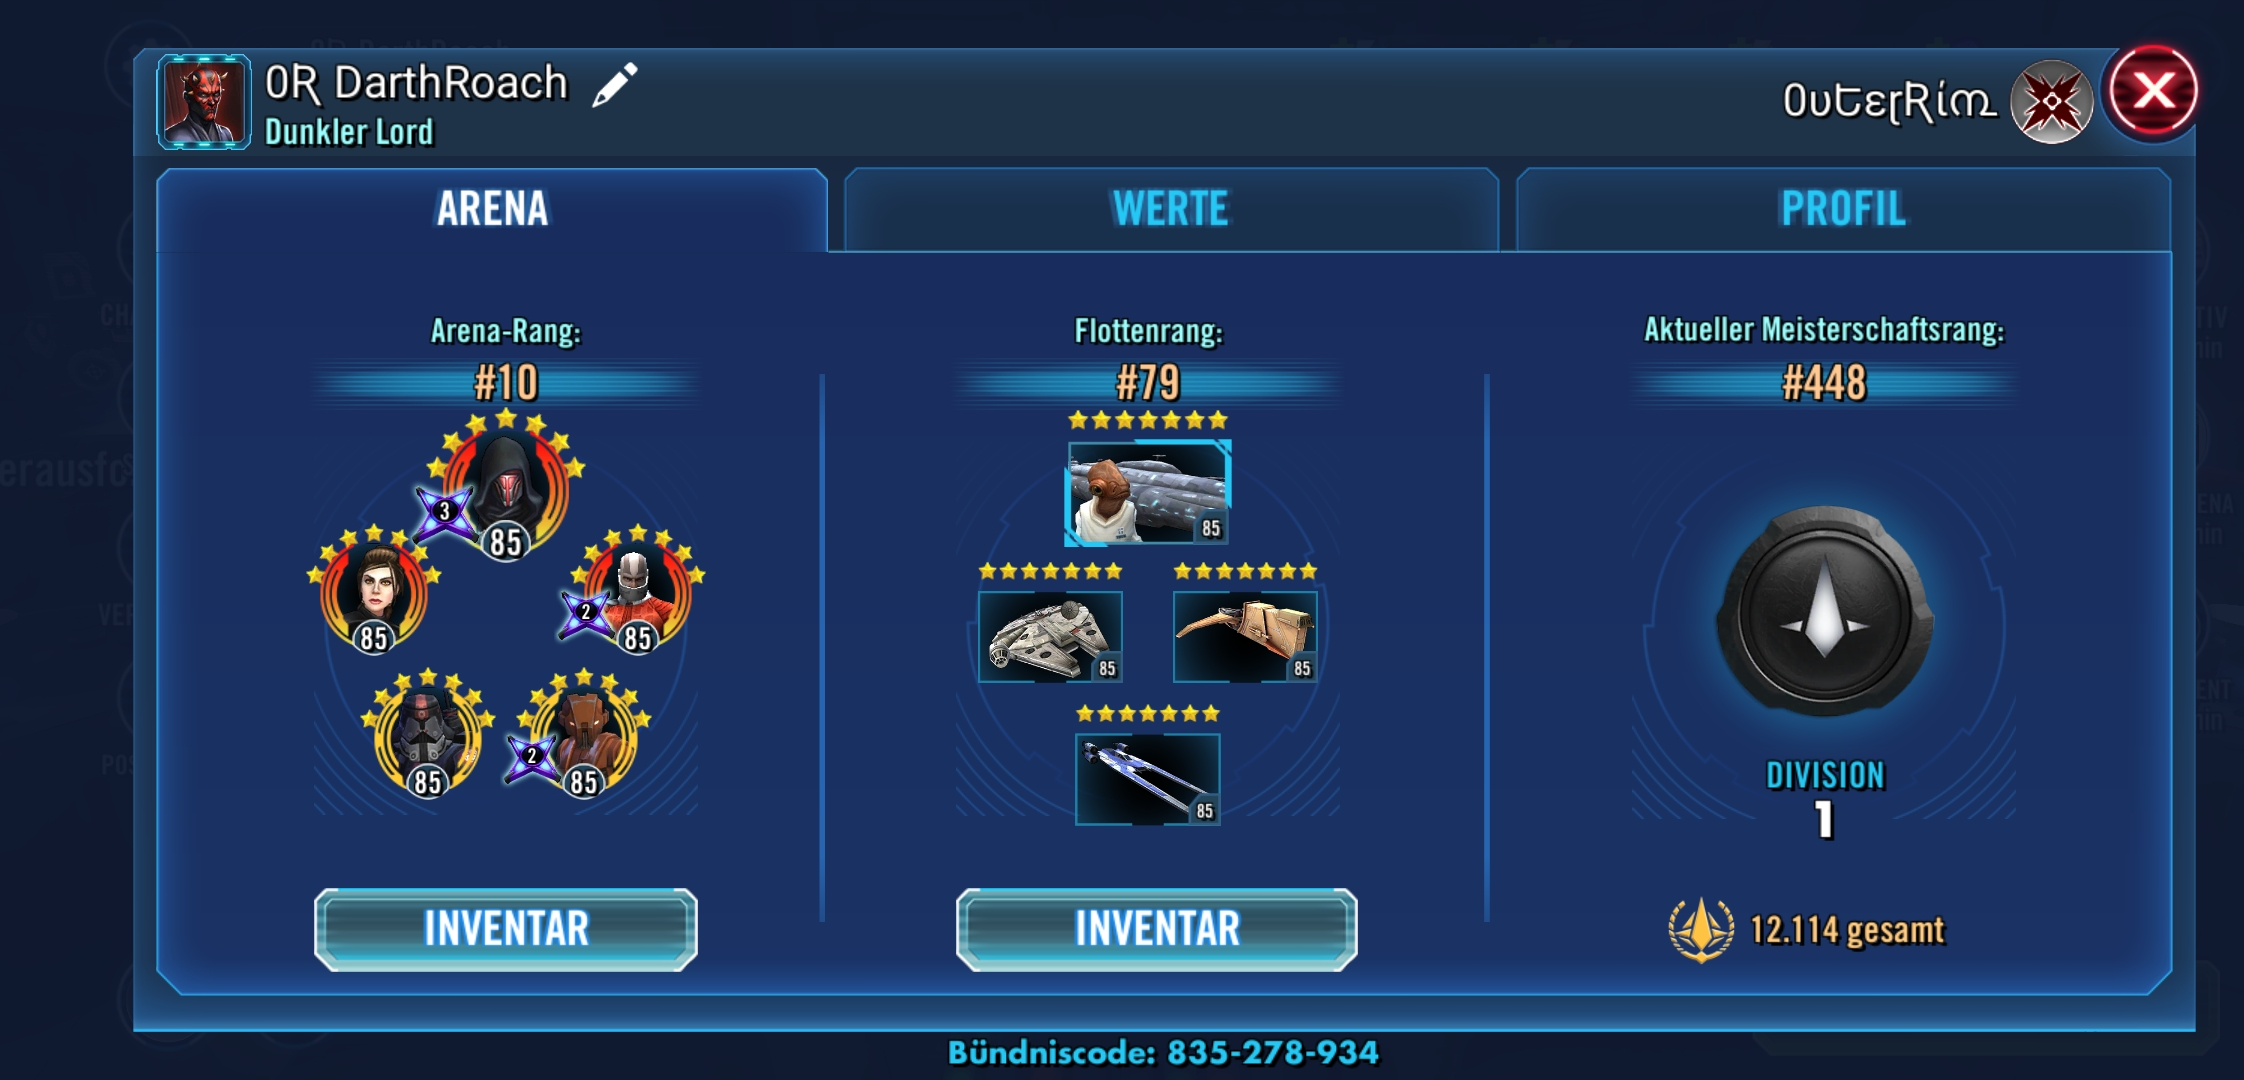 Screenshot_20190712_233658_com.ea.game.starwarscapital_row.jpg